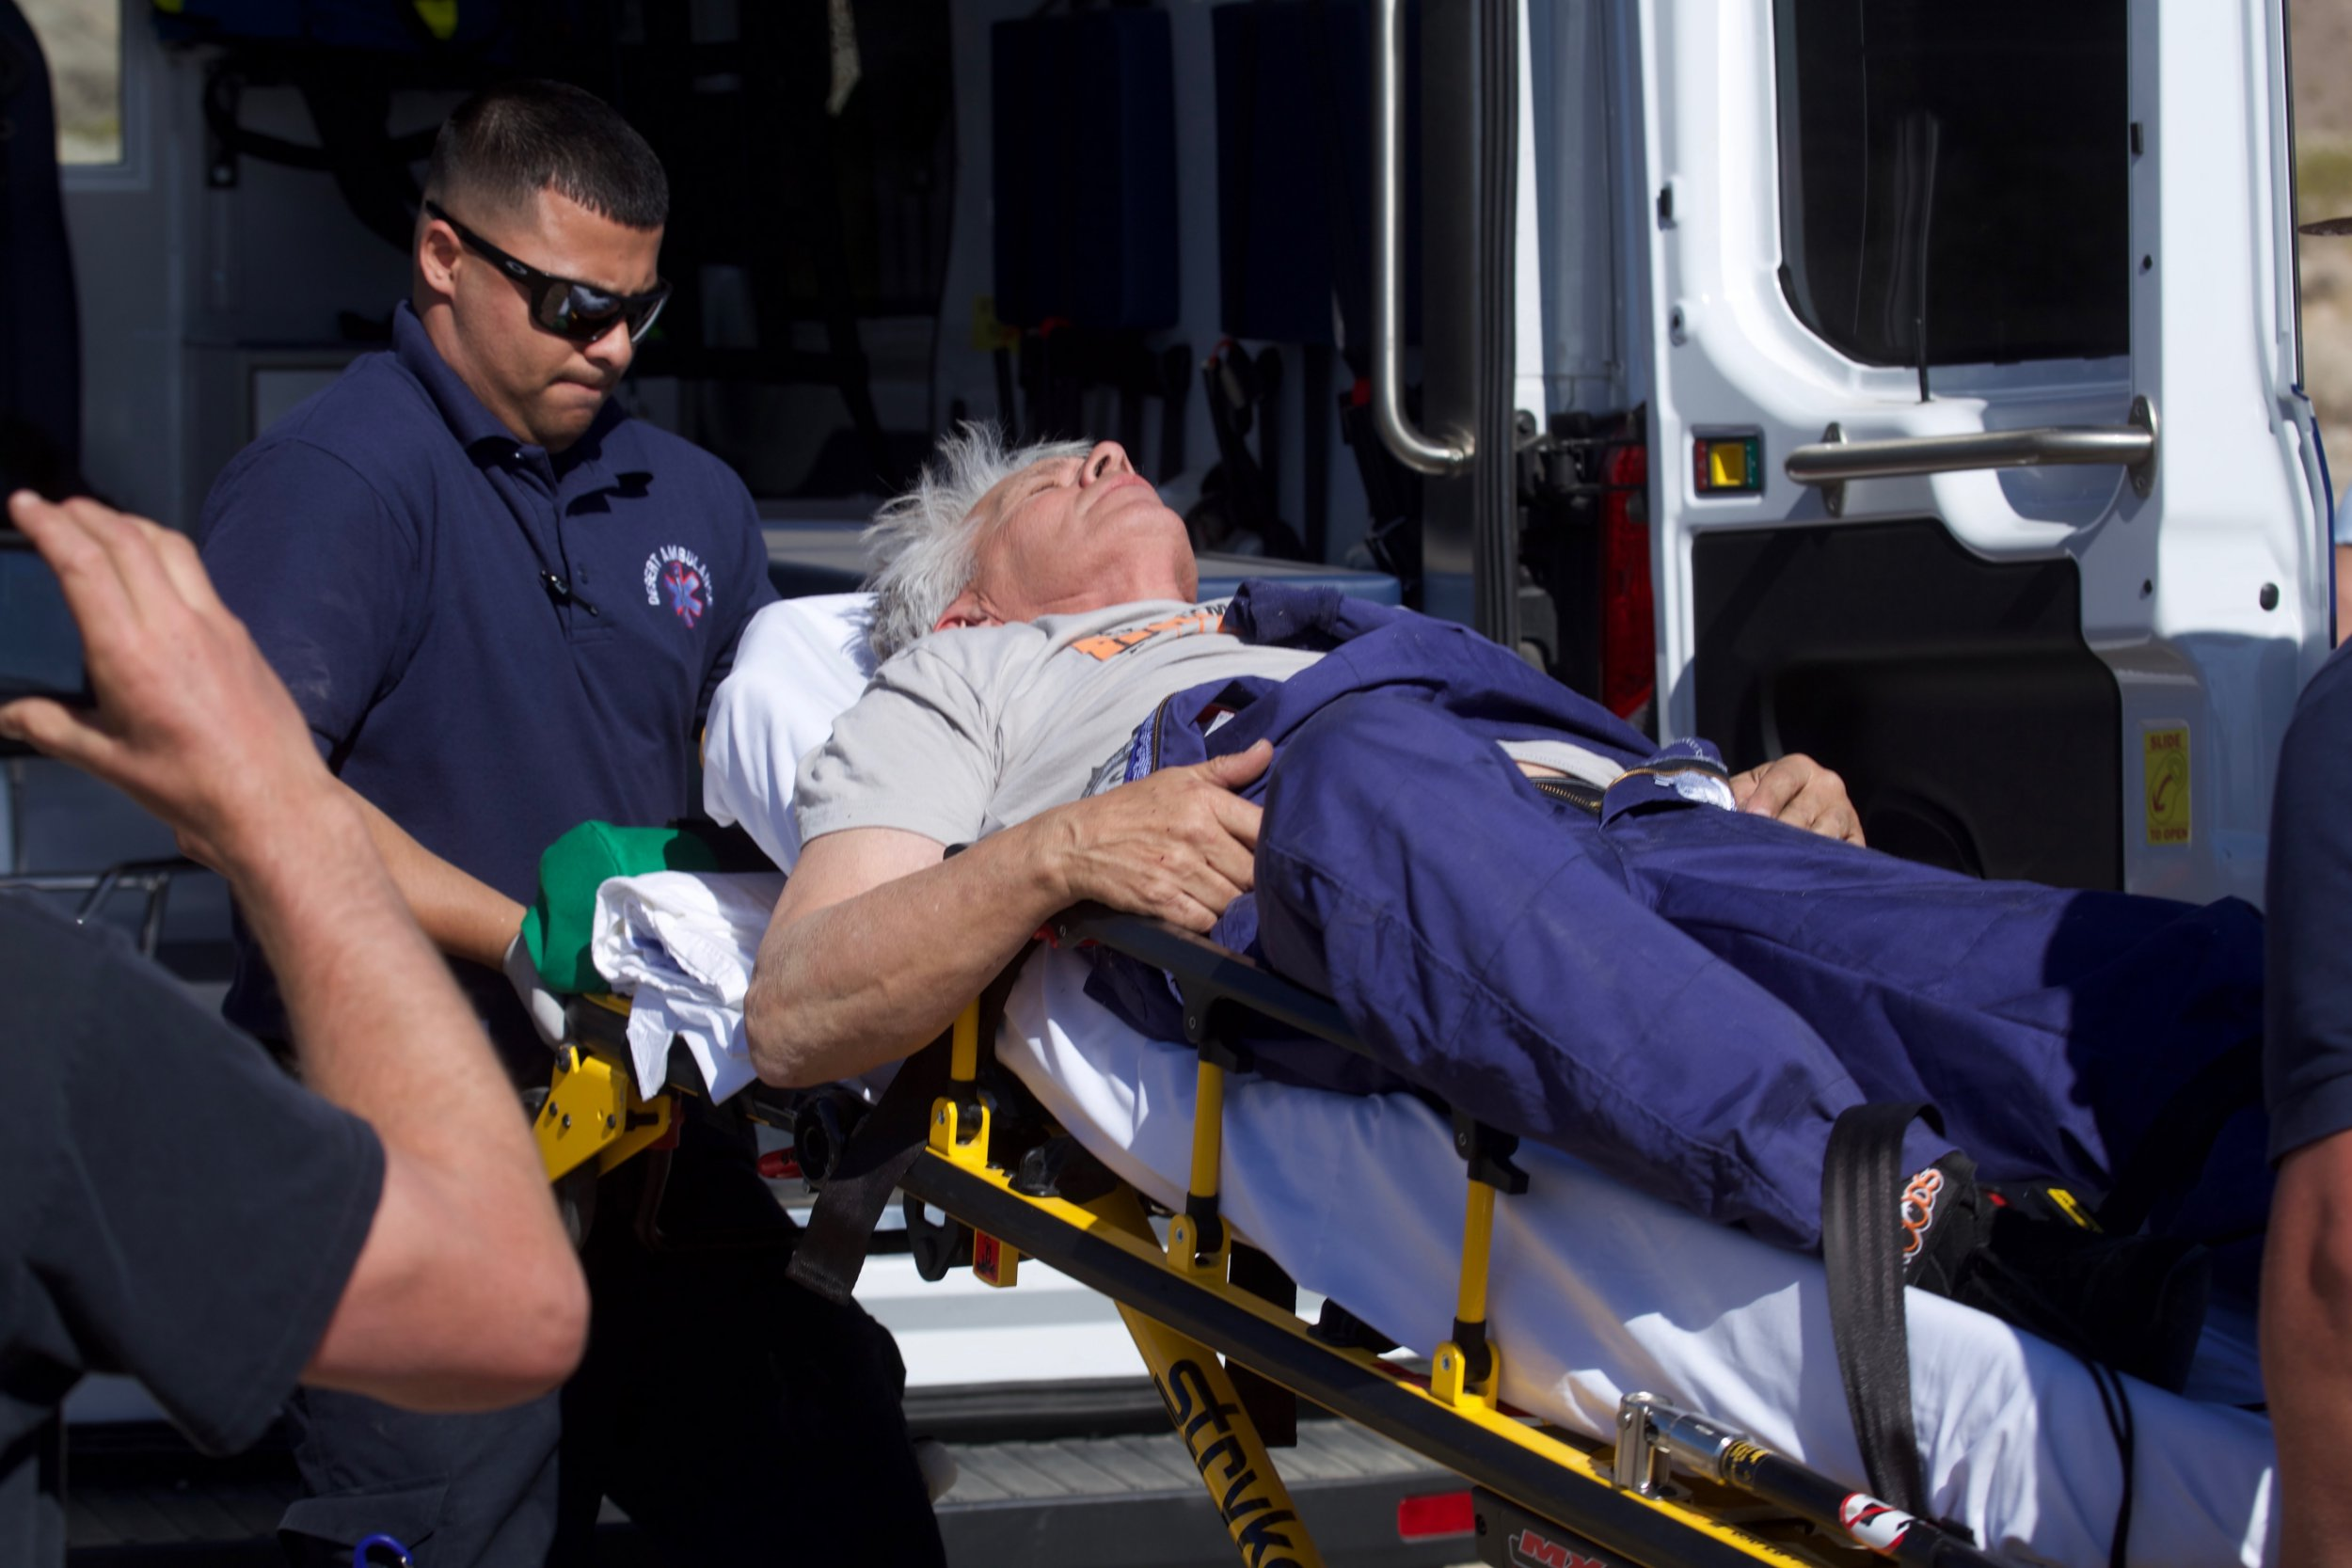 """""""Mad"""" Mike Hughes is carried on a stretcher after his home-made rocket launched and returned to the ground near Amboy, Calif., on Saturday, March 24, 2018. The self-taught rocket scientist who believes the Earth is flat propelled himself about 1,875 feet into the air before a hard-landing in the Mojave Desert that left him injured. (Matt Hartman via AP)"""